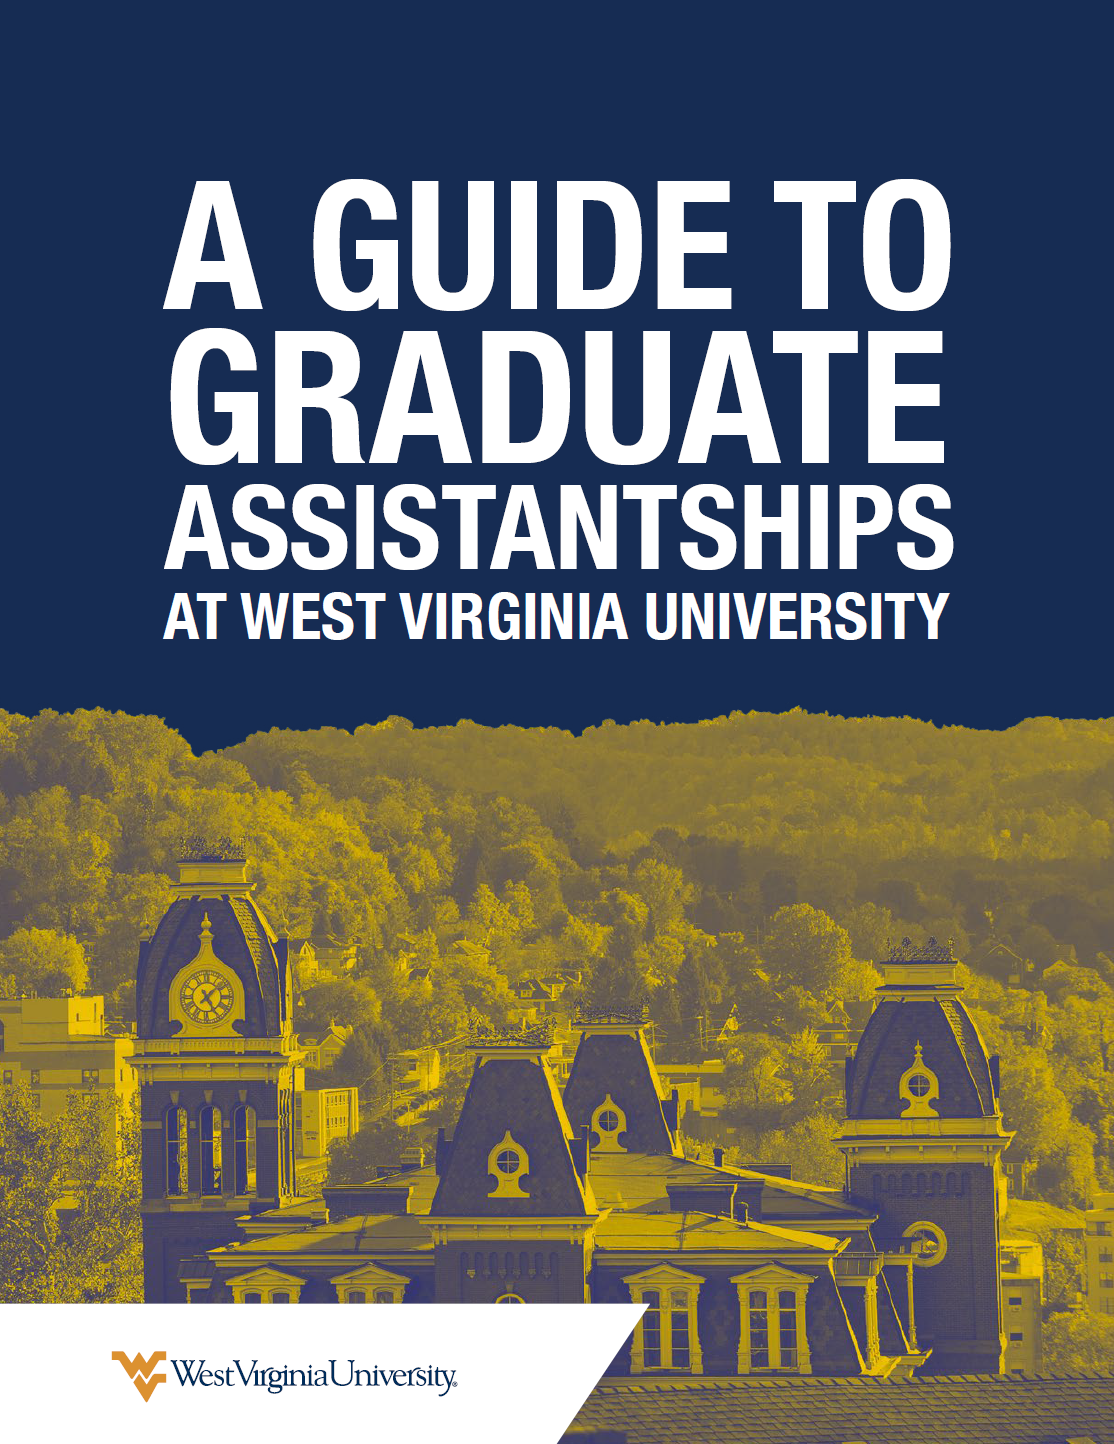 Guide-to-Graduate-Assistantships-at-WVU-cover.png